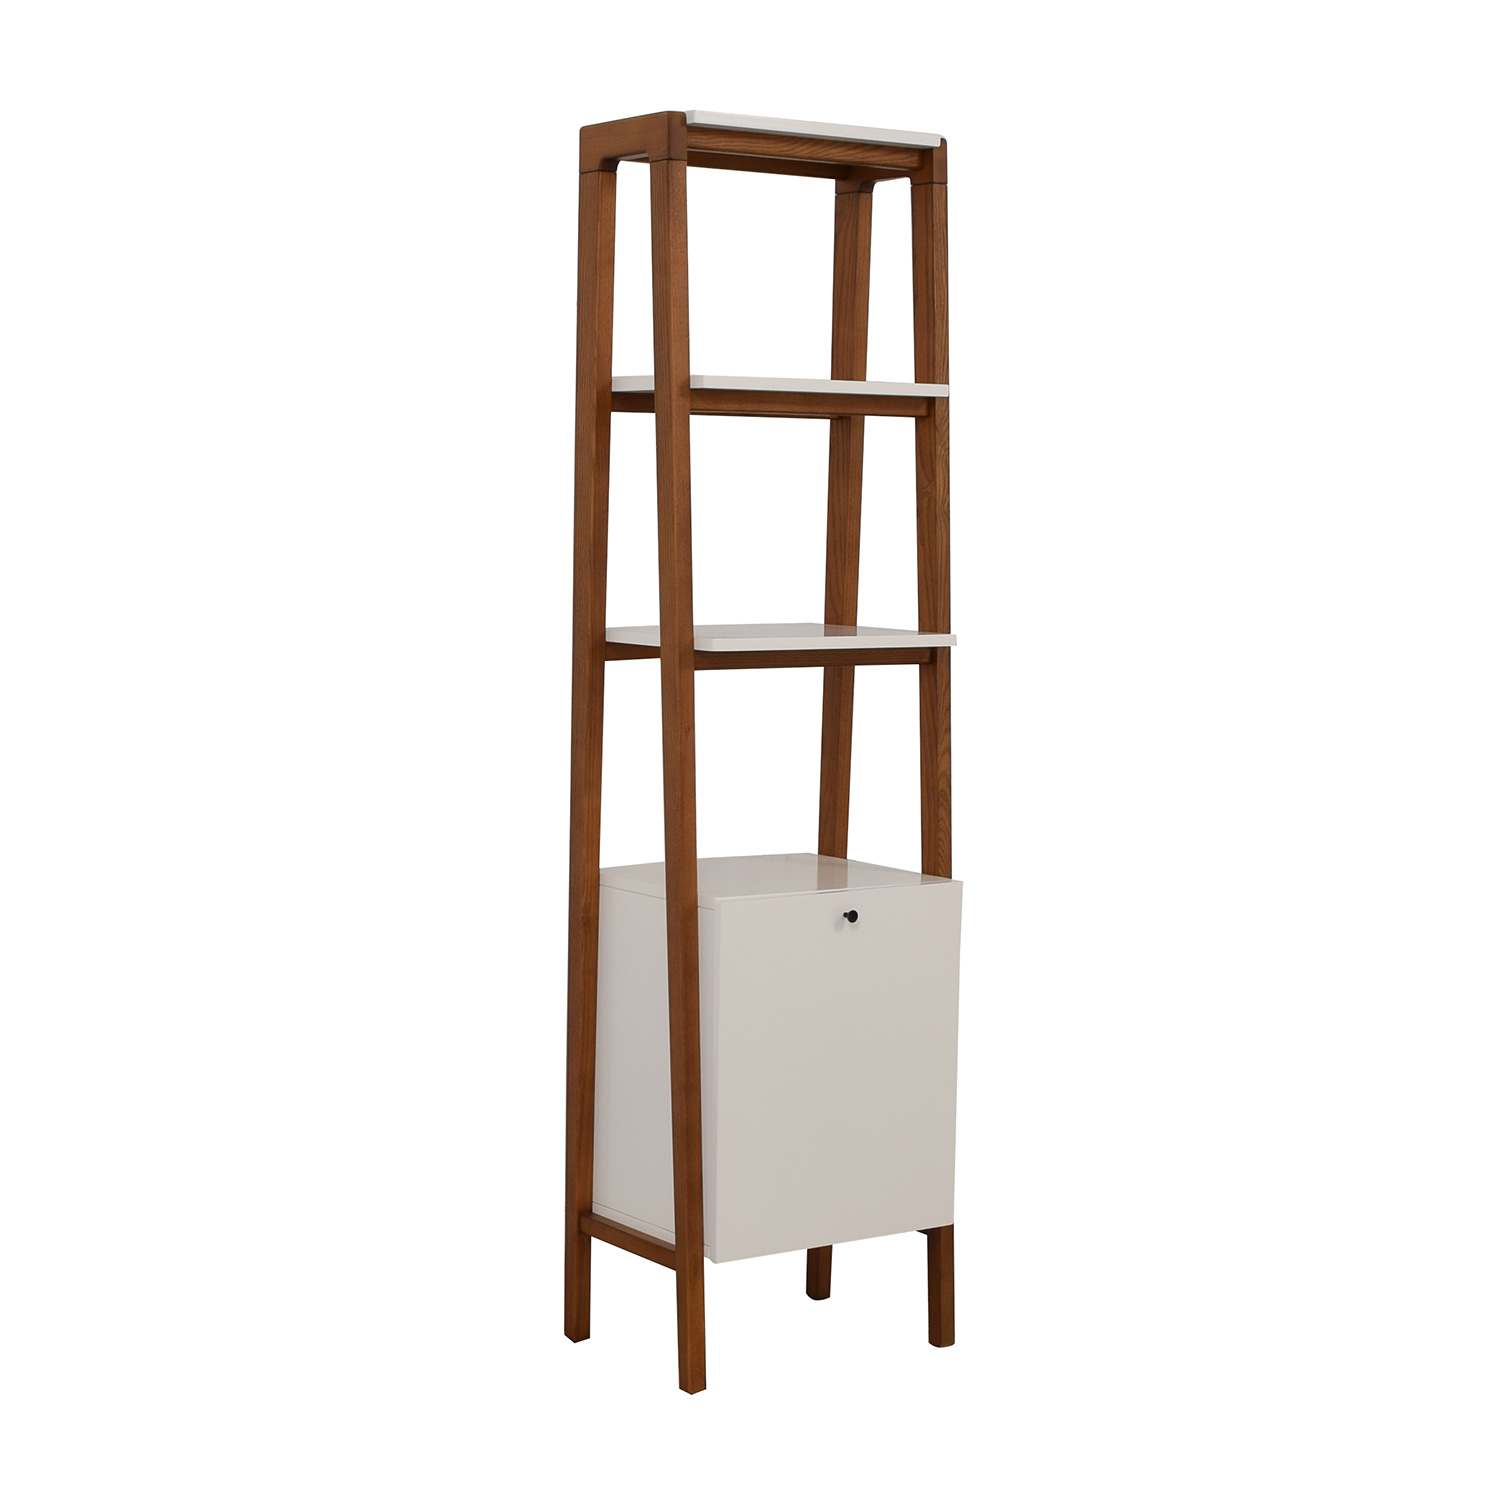 West Elm West Elm Modern Narrow Tower for sale